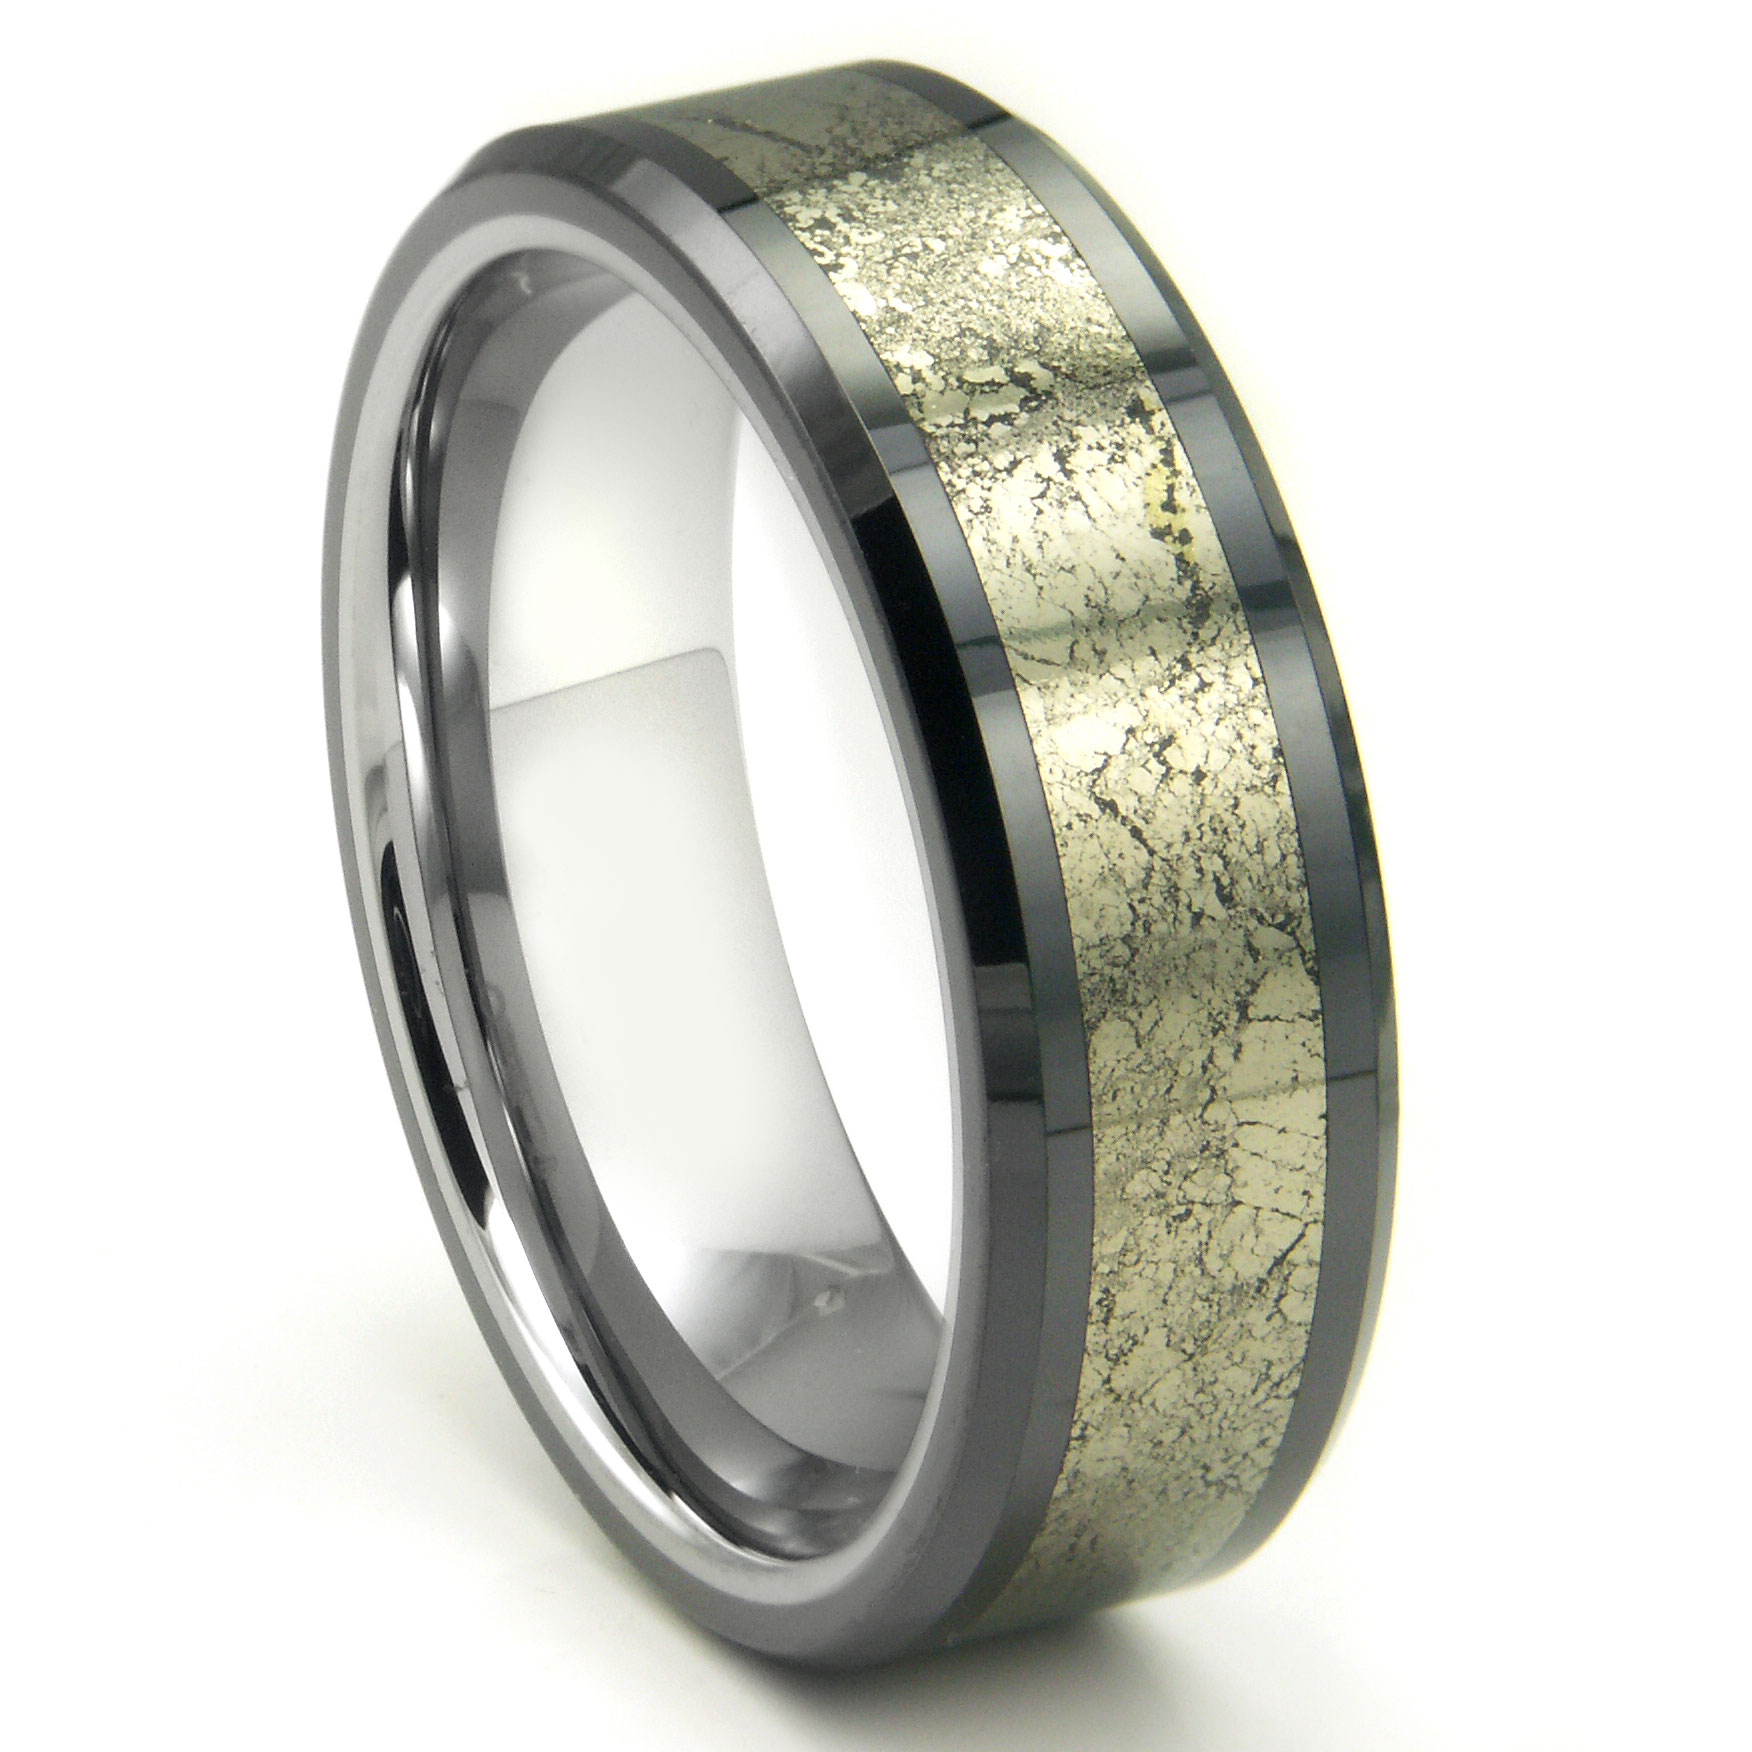 rings mens band wedding stainless coolmanjeweller ring s bands for black steel men coolman